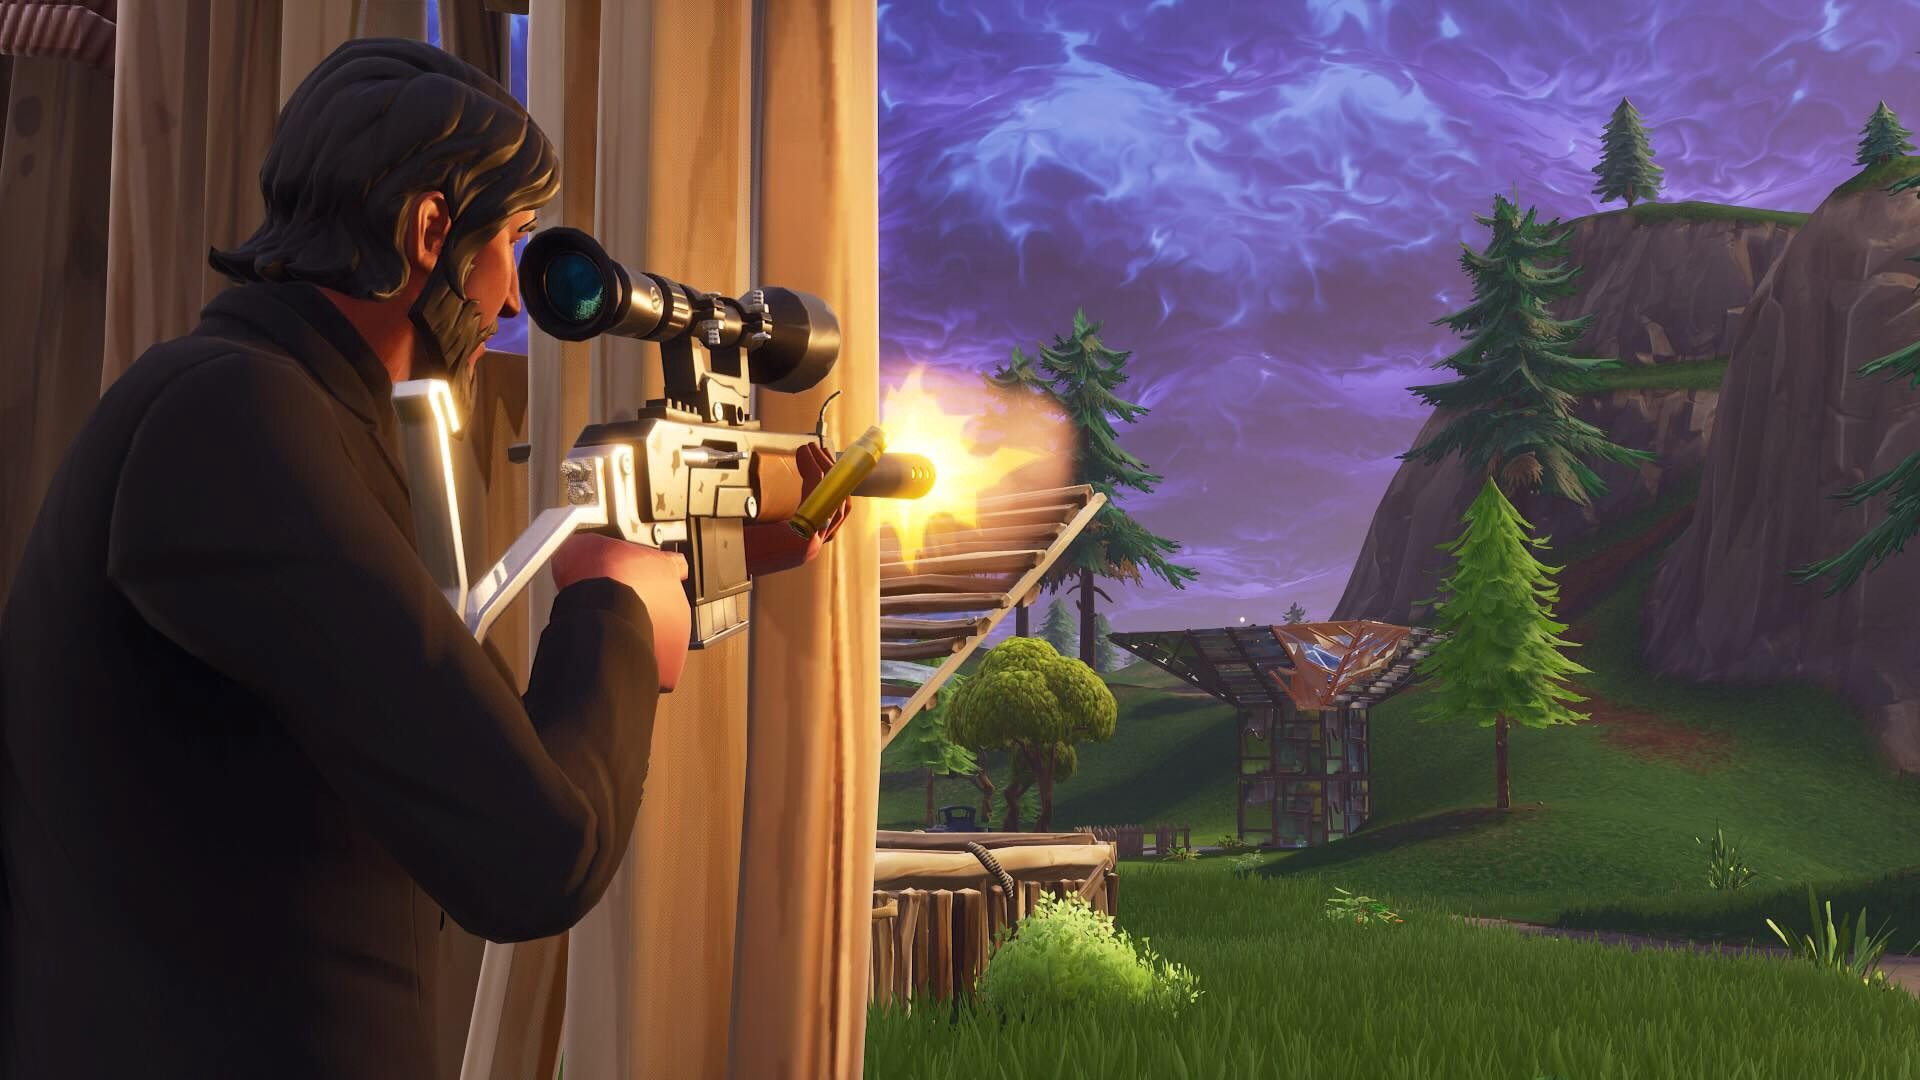 Fortnite Like Game In Roblox Fortnite And Roblox Are Changing Social Media As We Know It By Timmu Toke Virtual Worlds Medium